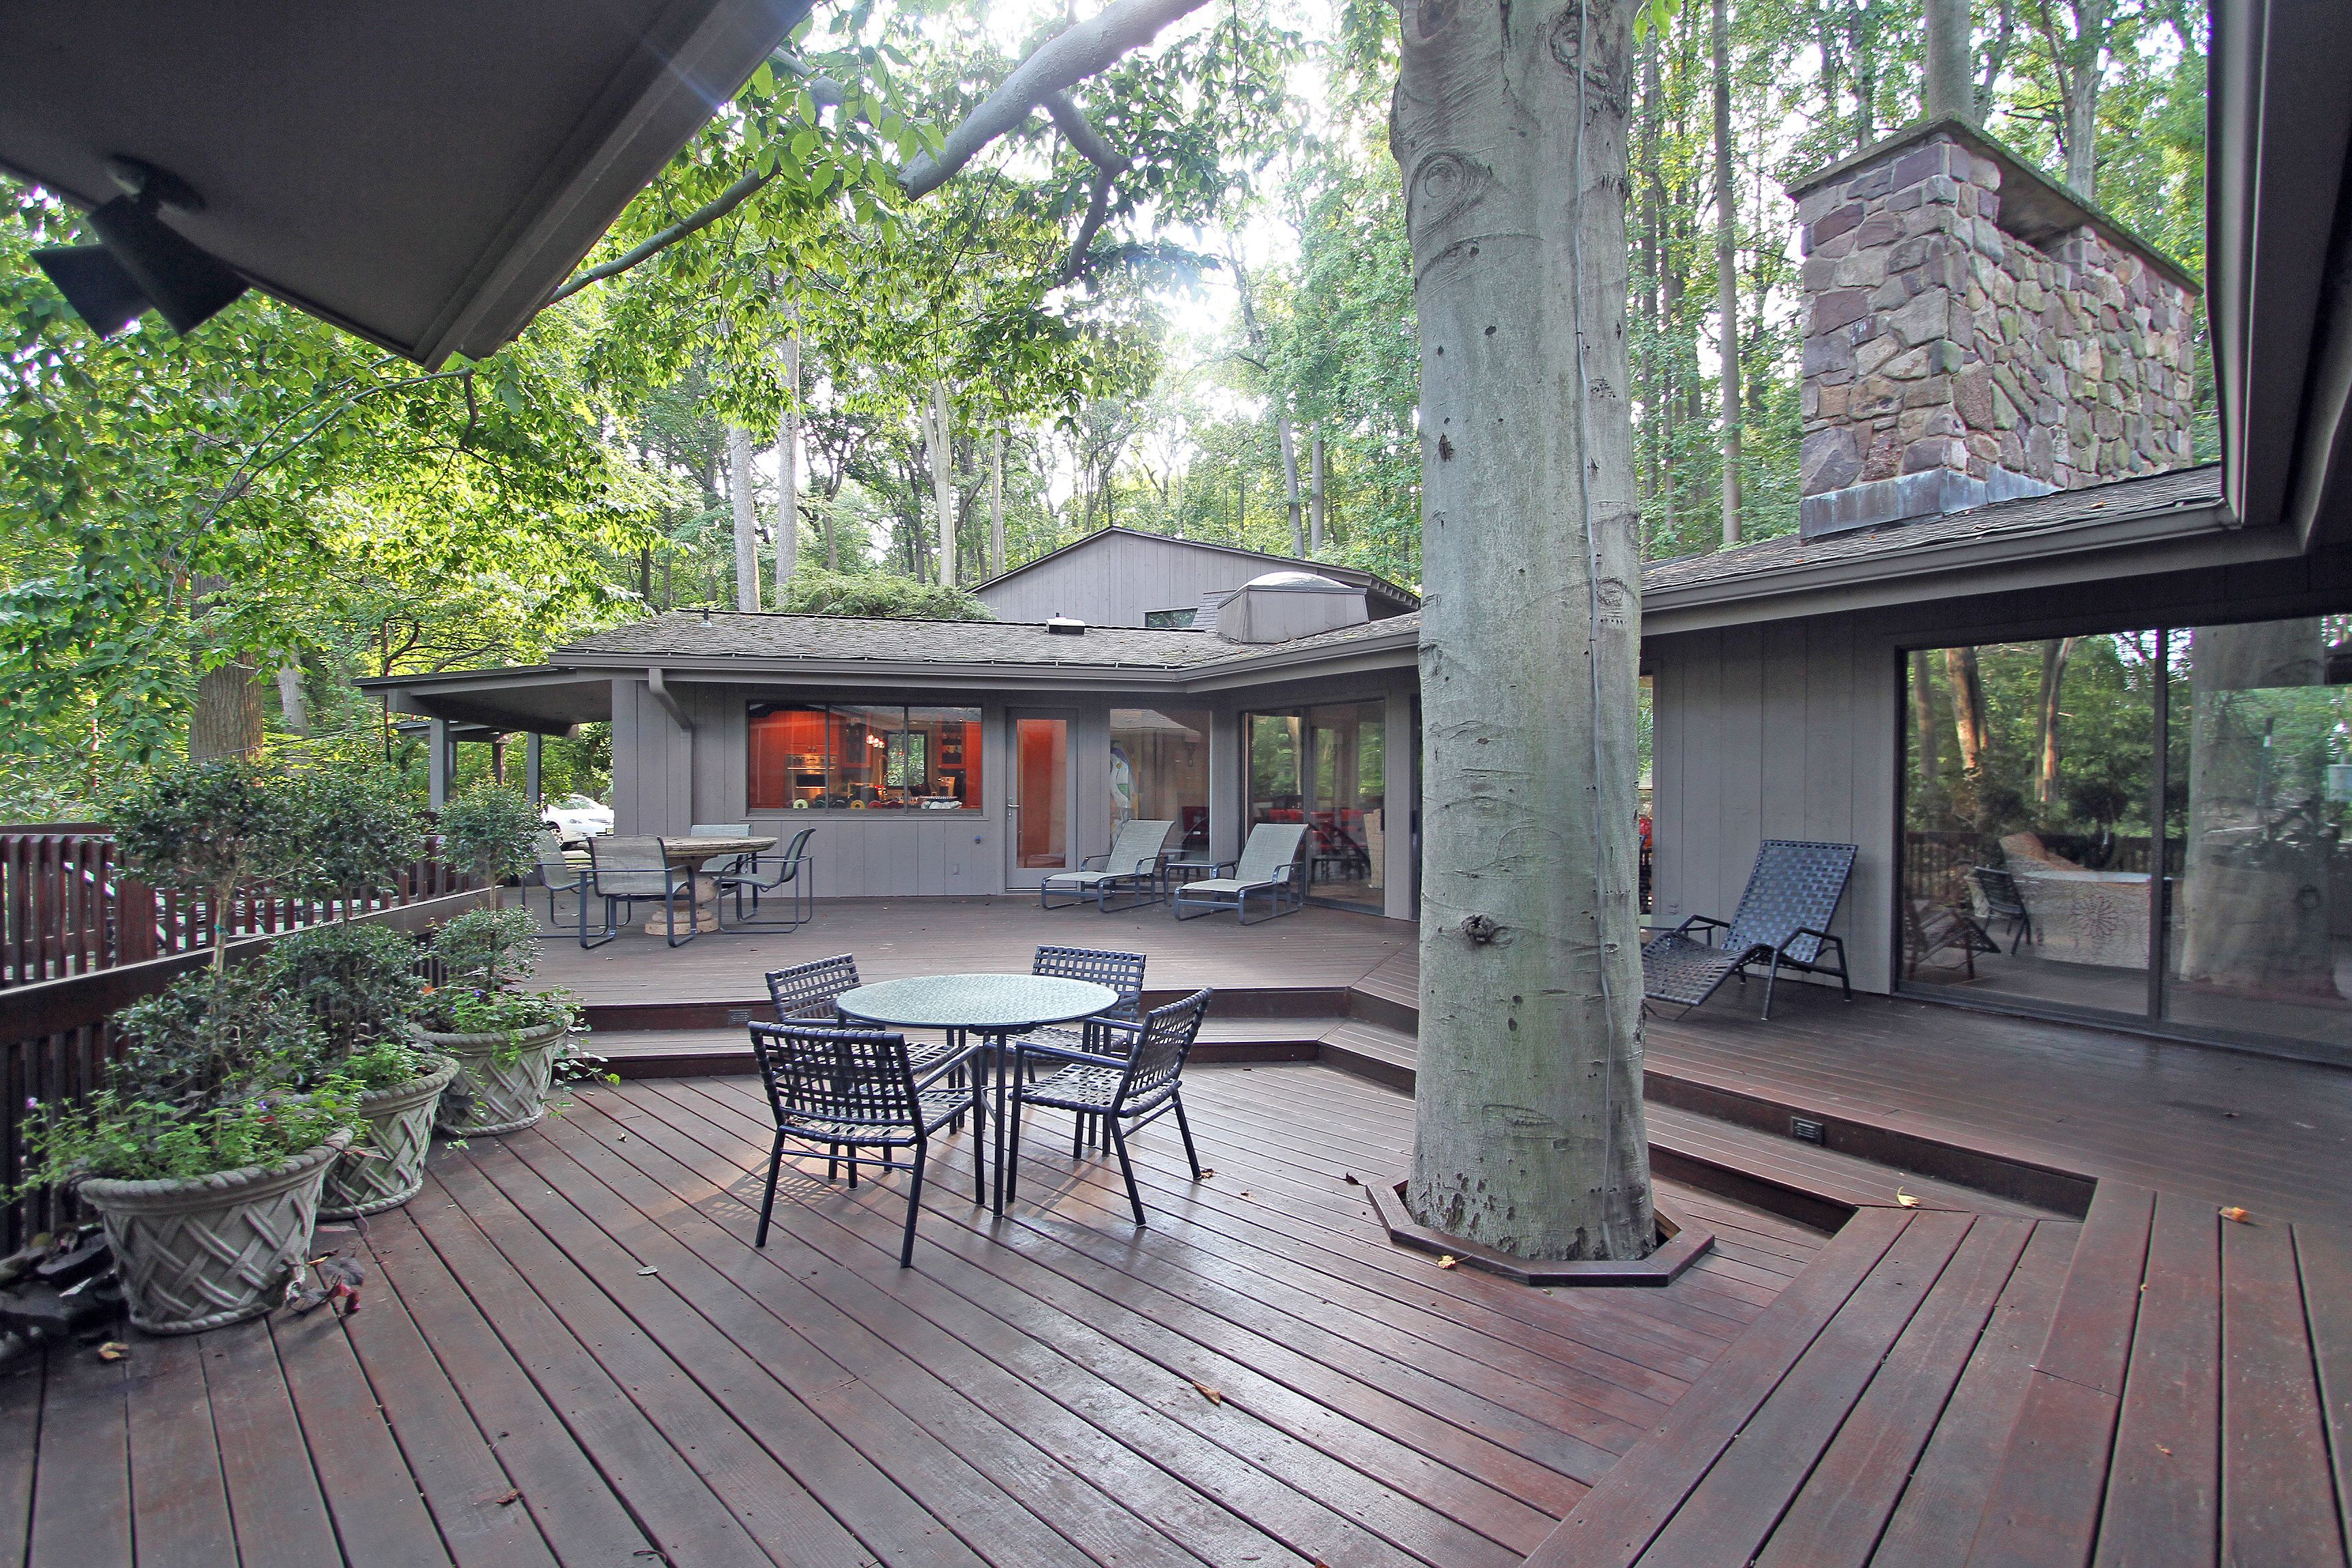 An amazing treehouse in exclusive Llewellyn Park, NJ ...